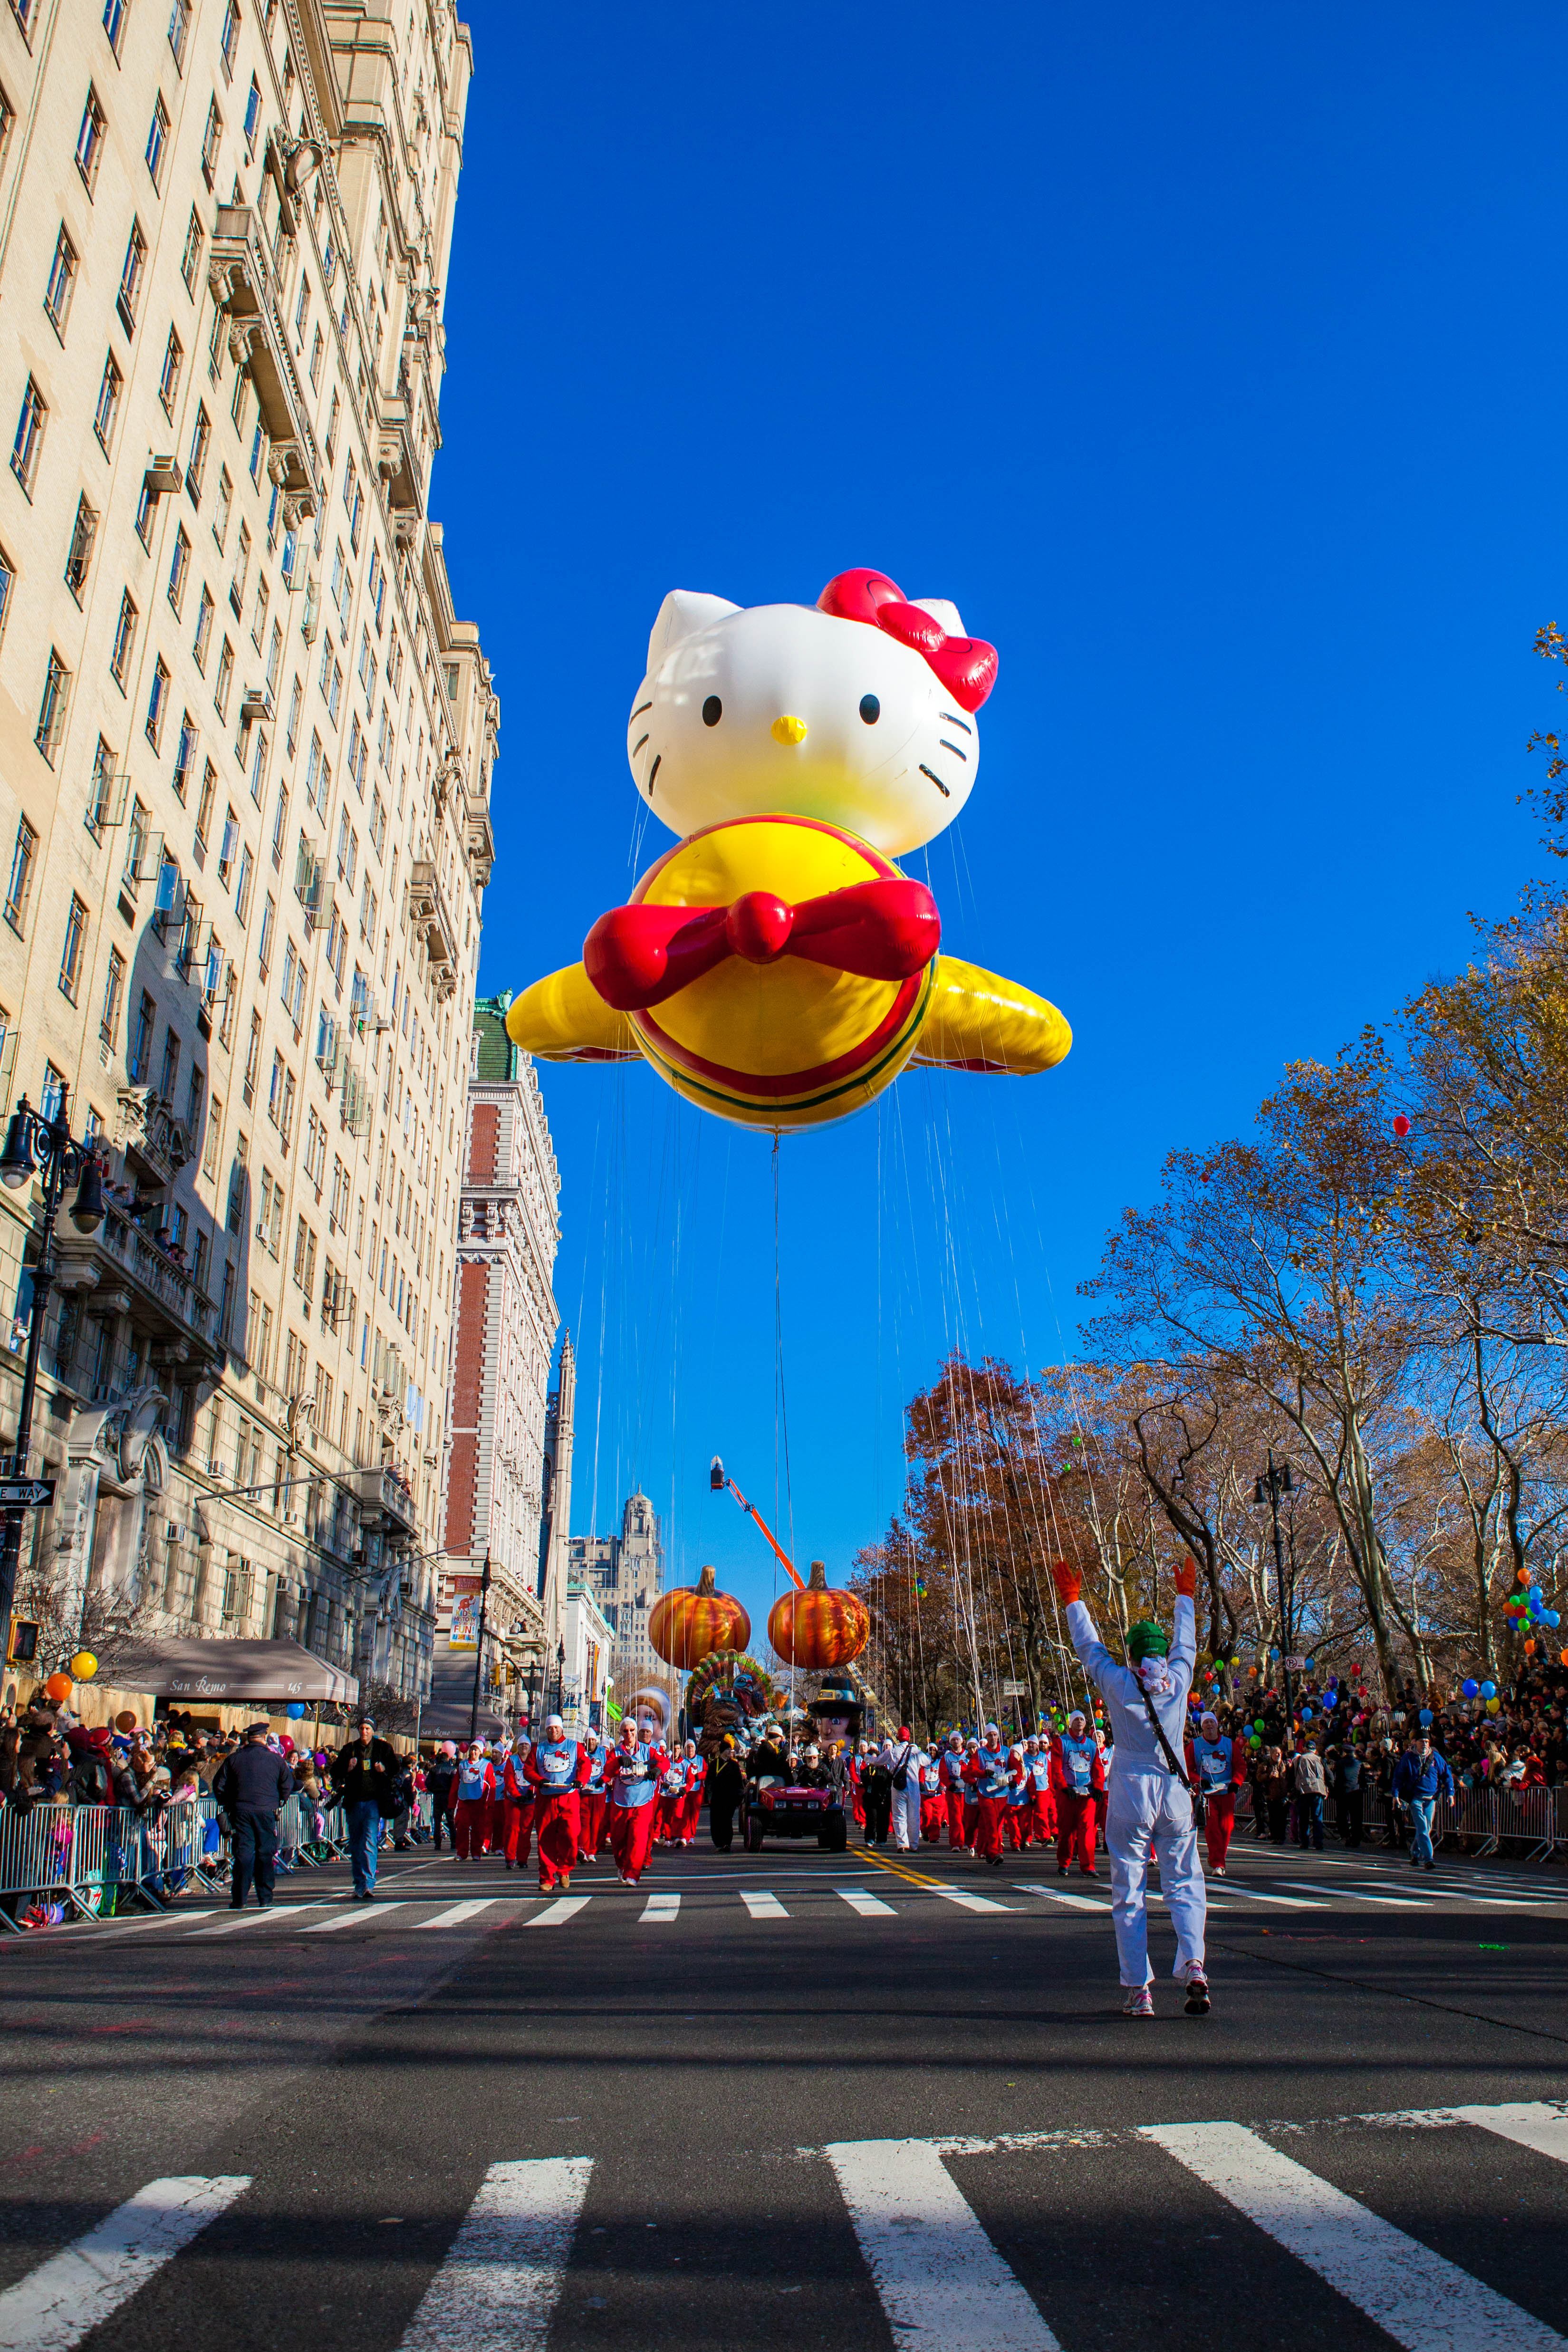 Macy S 10th Birthday Party At Dylan S Candy Bar: 2015 Macy's Thanksgiving Day Parade: Kicking-Off The